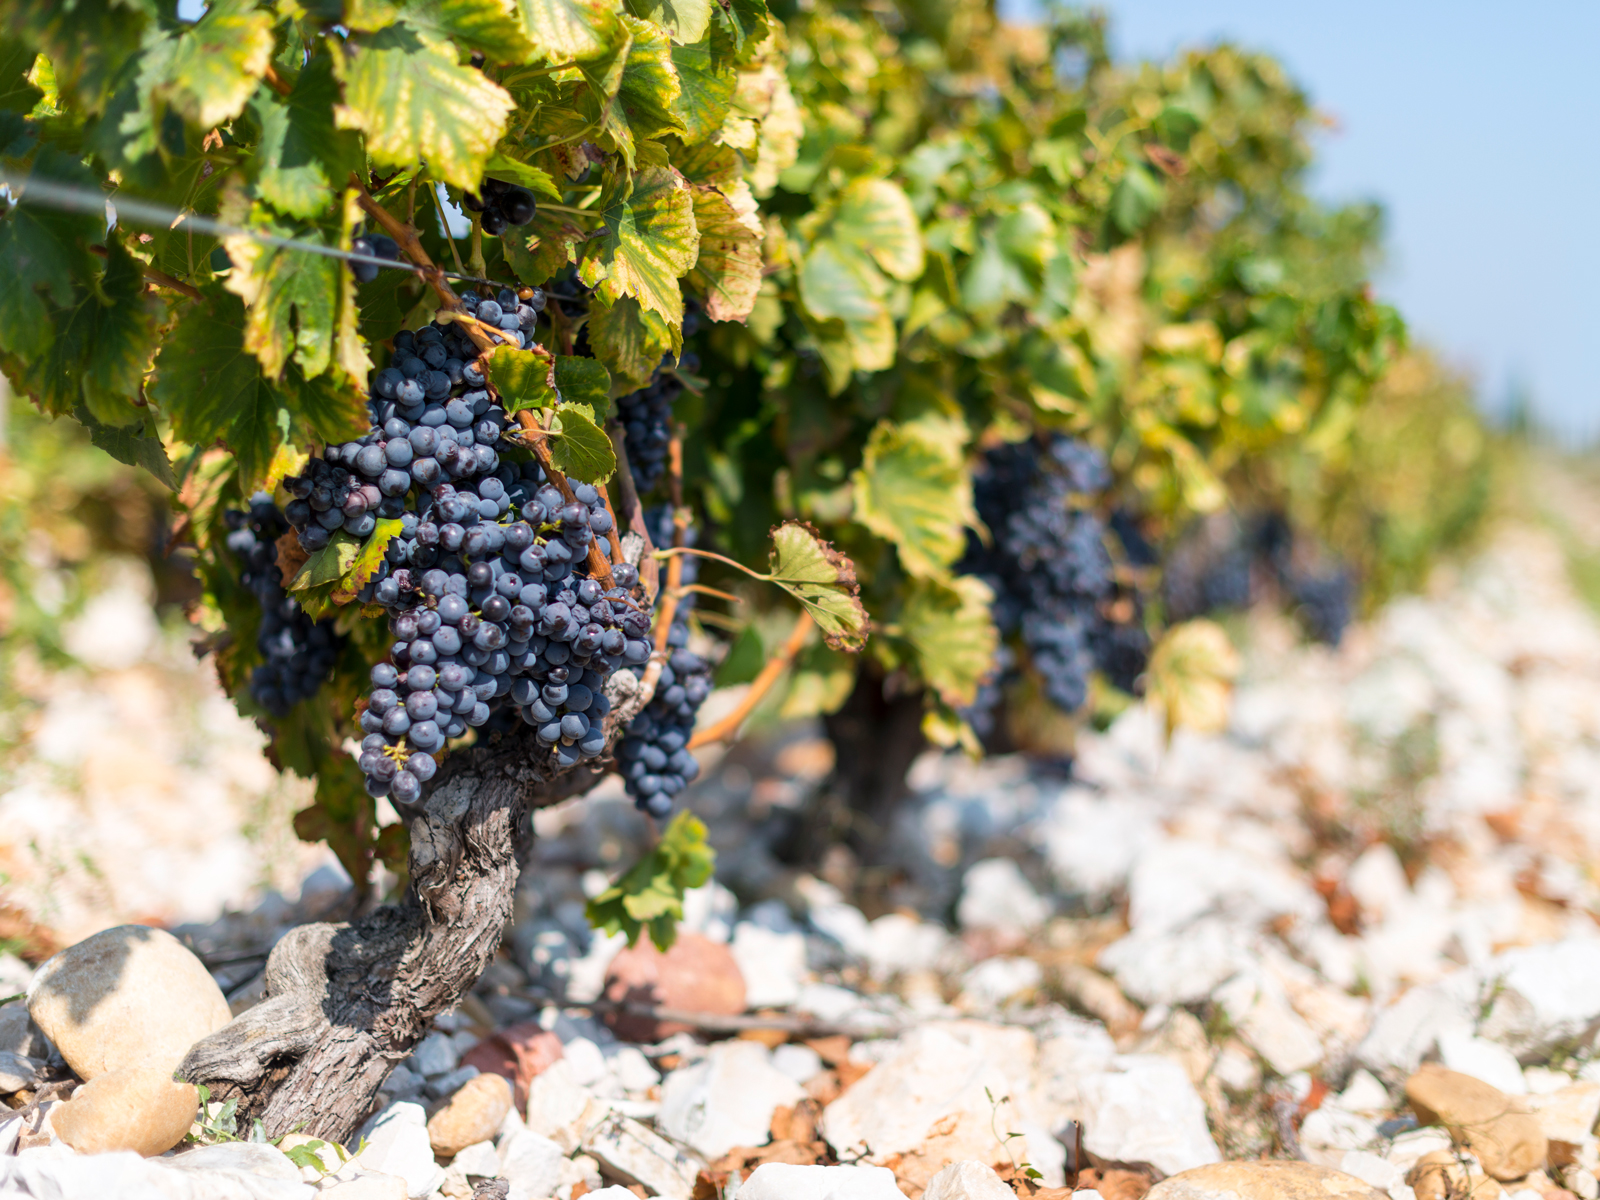 chateauneuf-du-pape-grapes-FT-BLOG0719.jpg